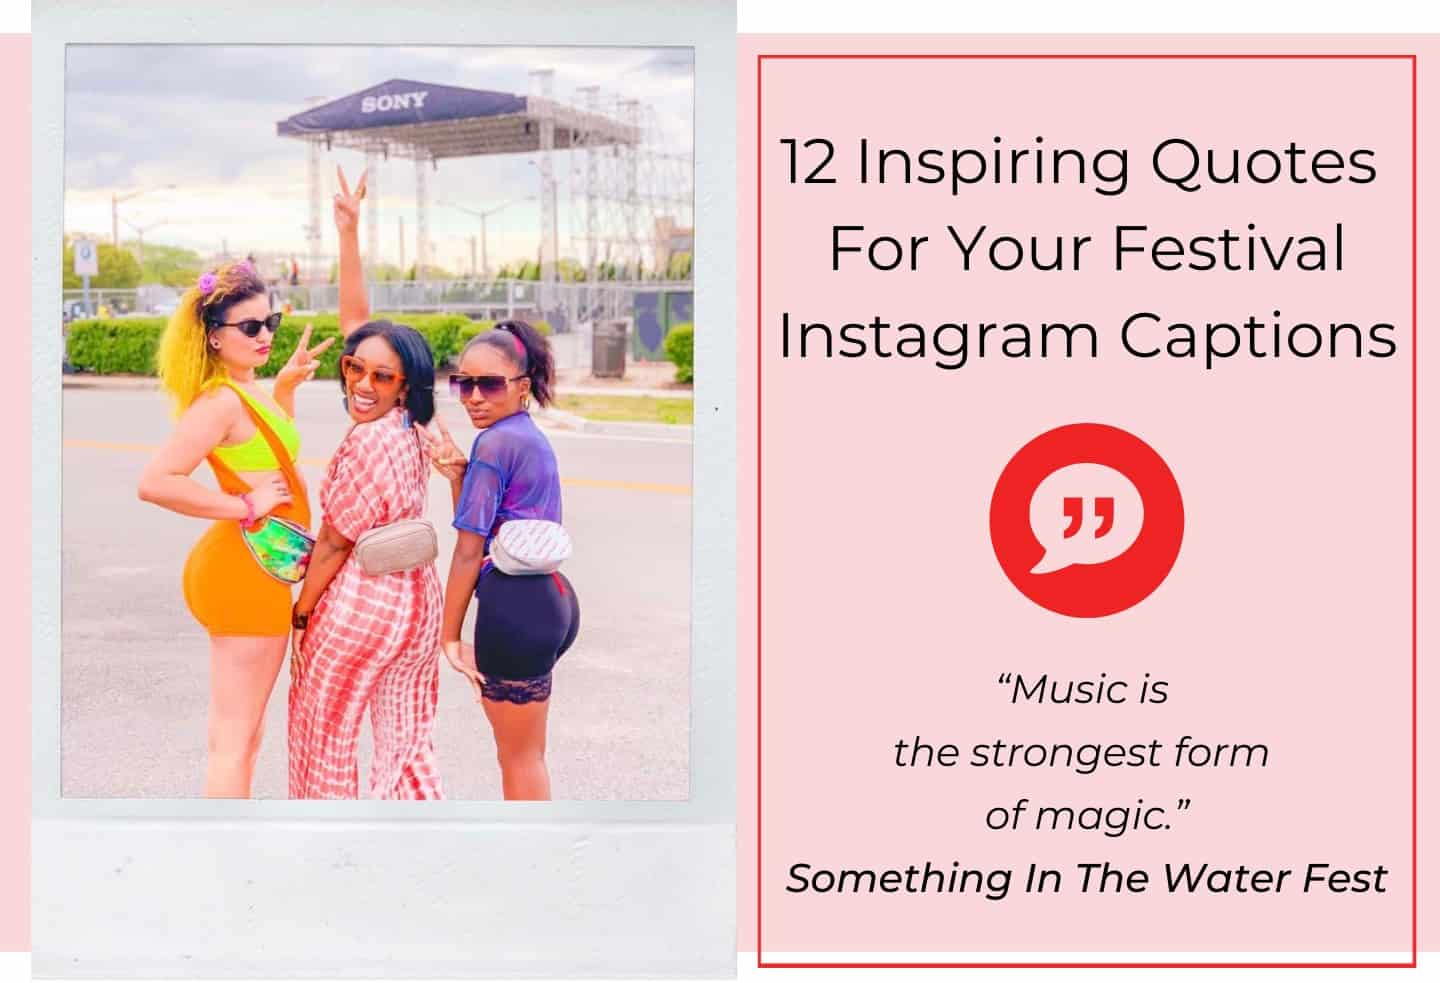 12 Inspiring Quotes For Your Instagram Captions